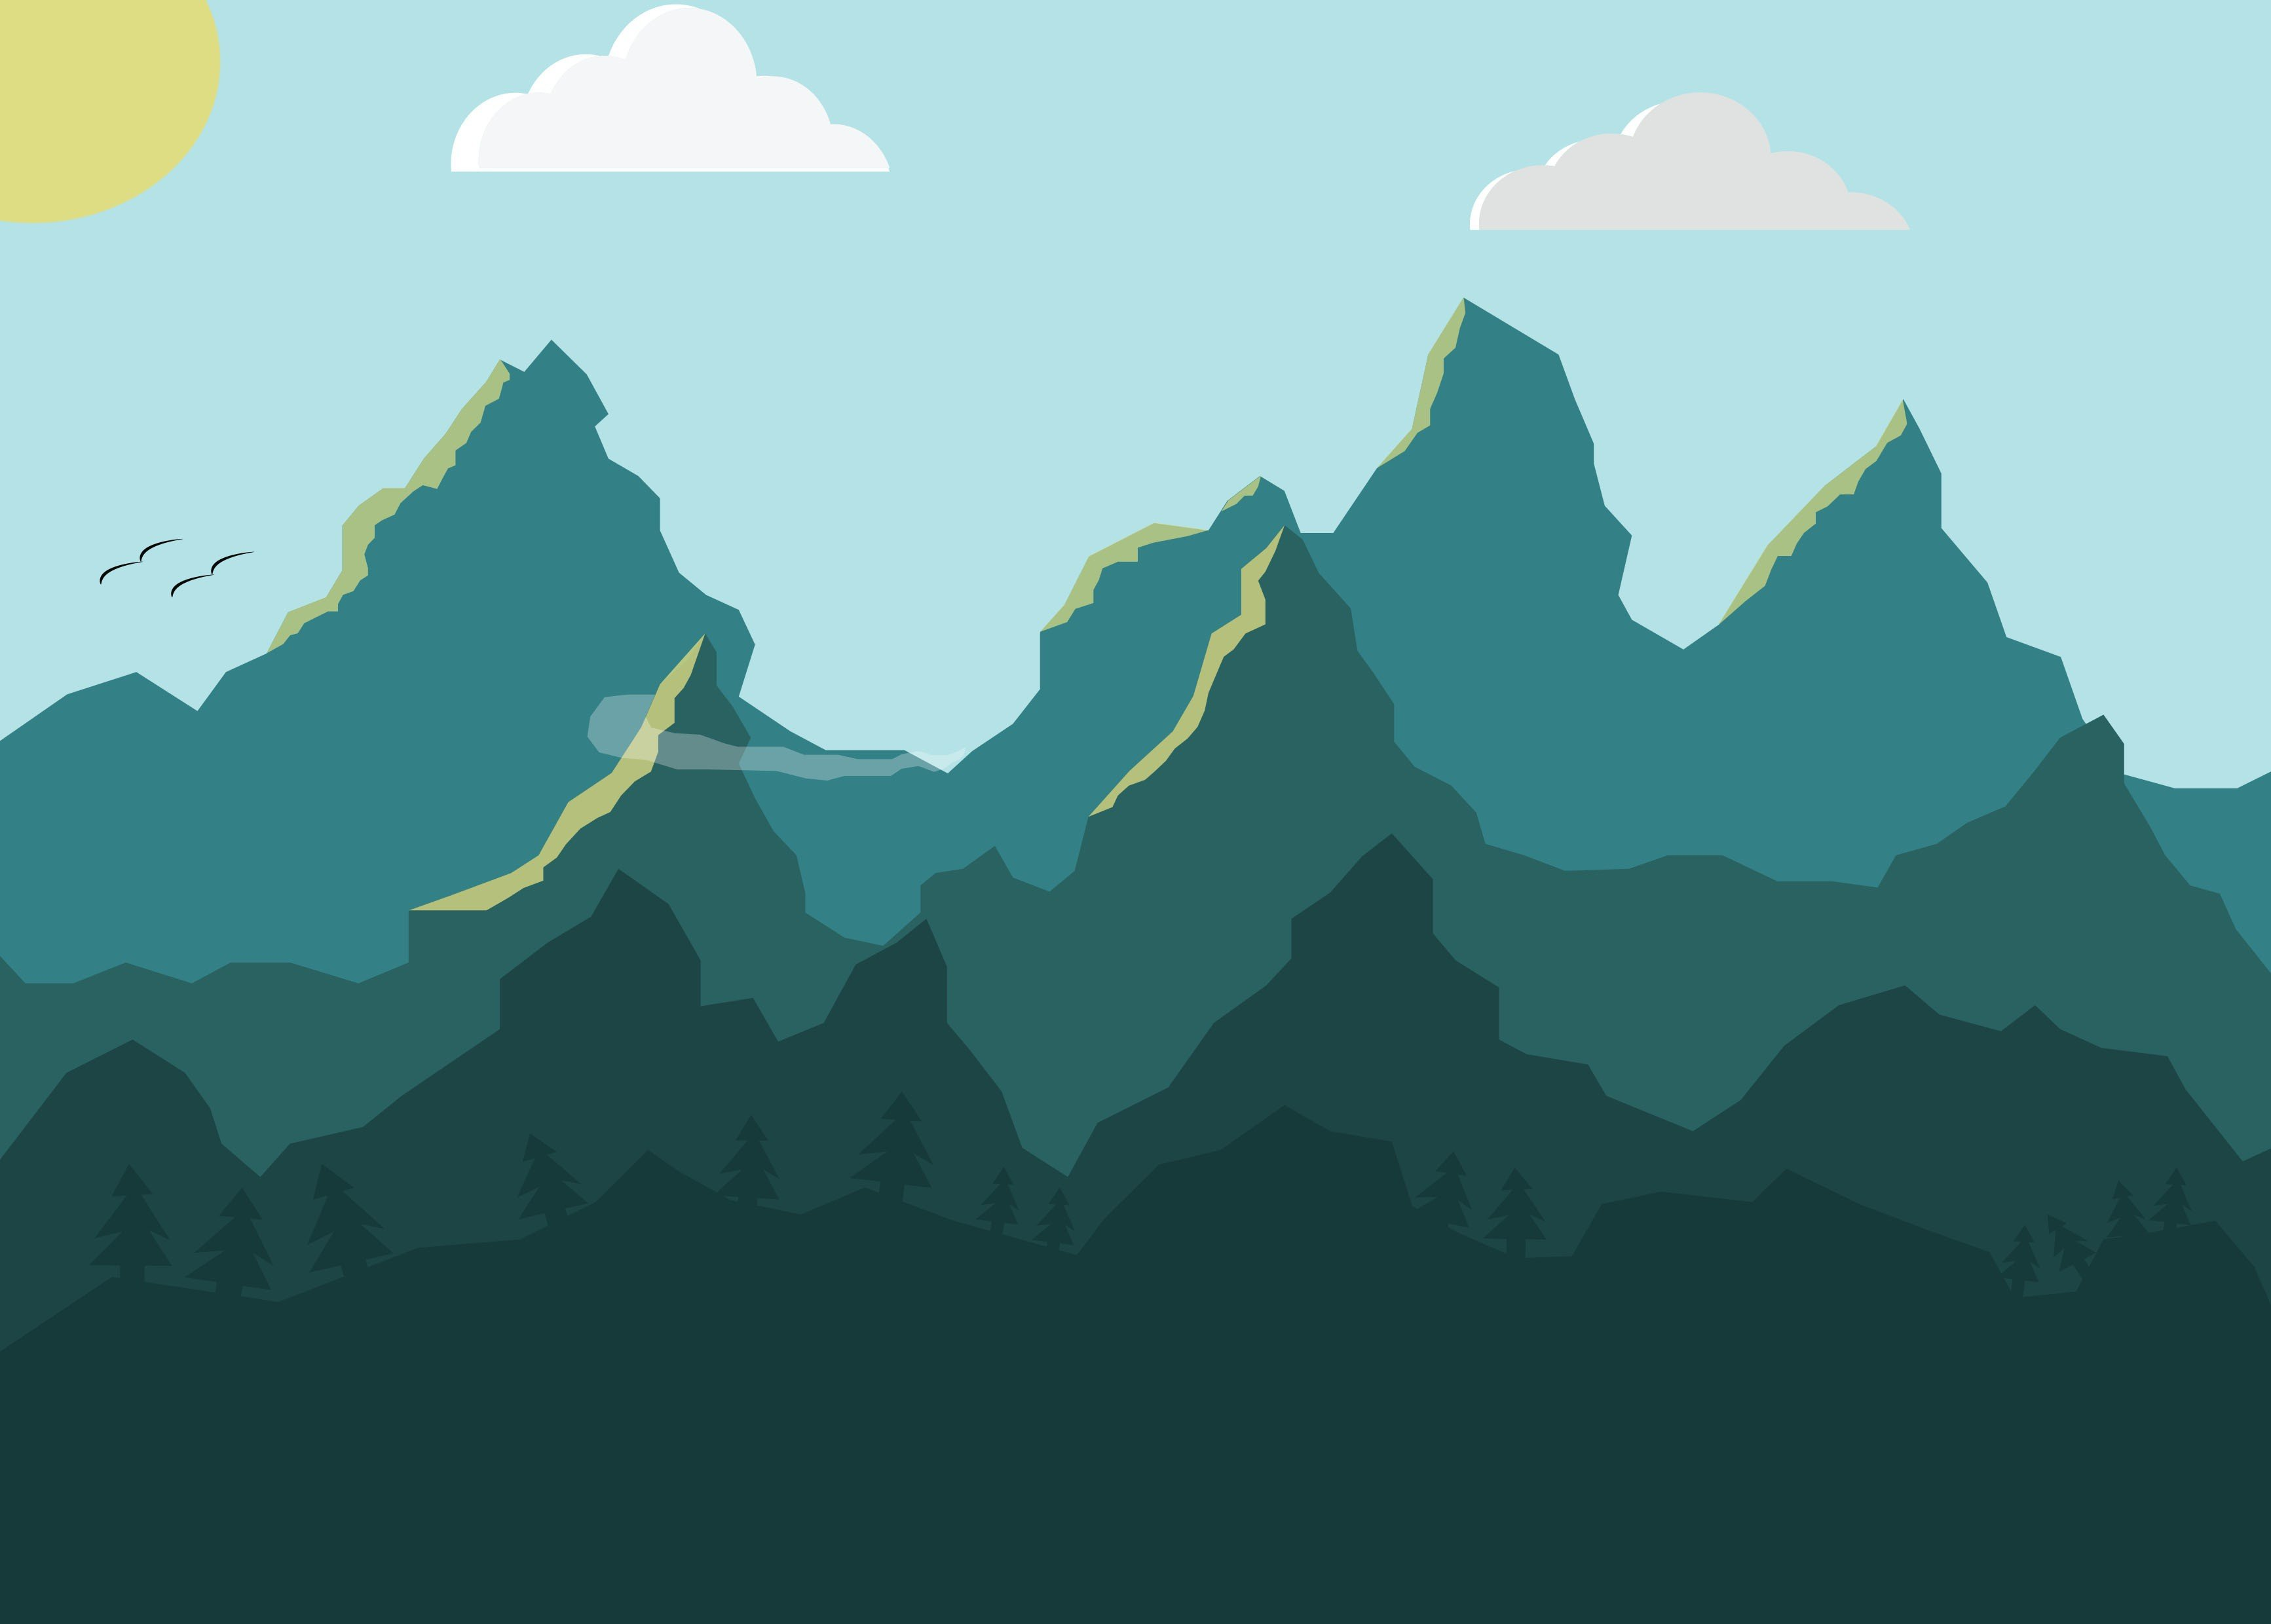 Photoshop landscape mountains birds trees clouds hd wallpapers desktop and mobile images - Hd clouds for photoshop ...